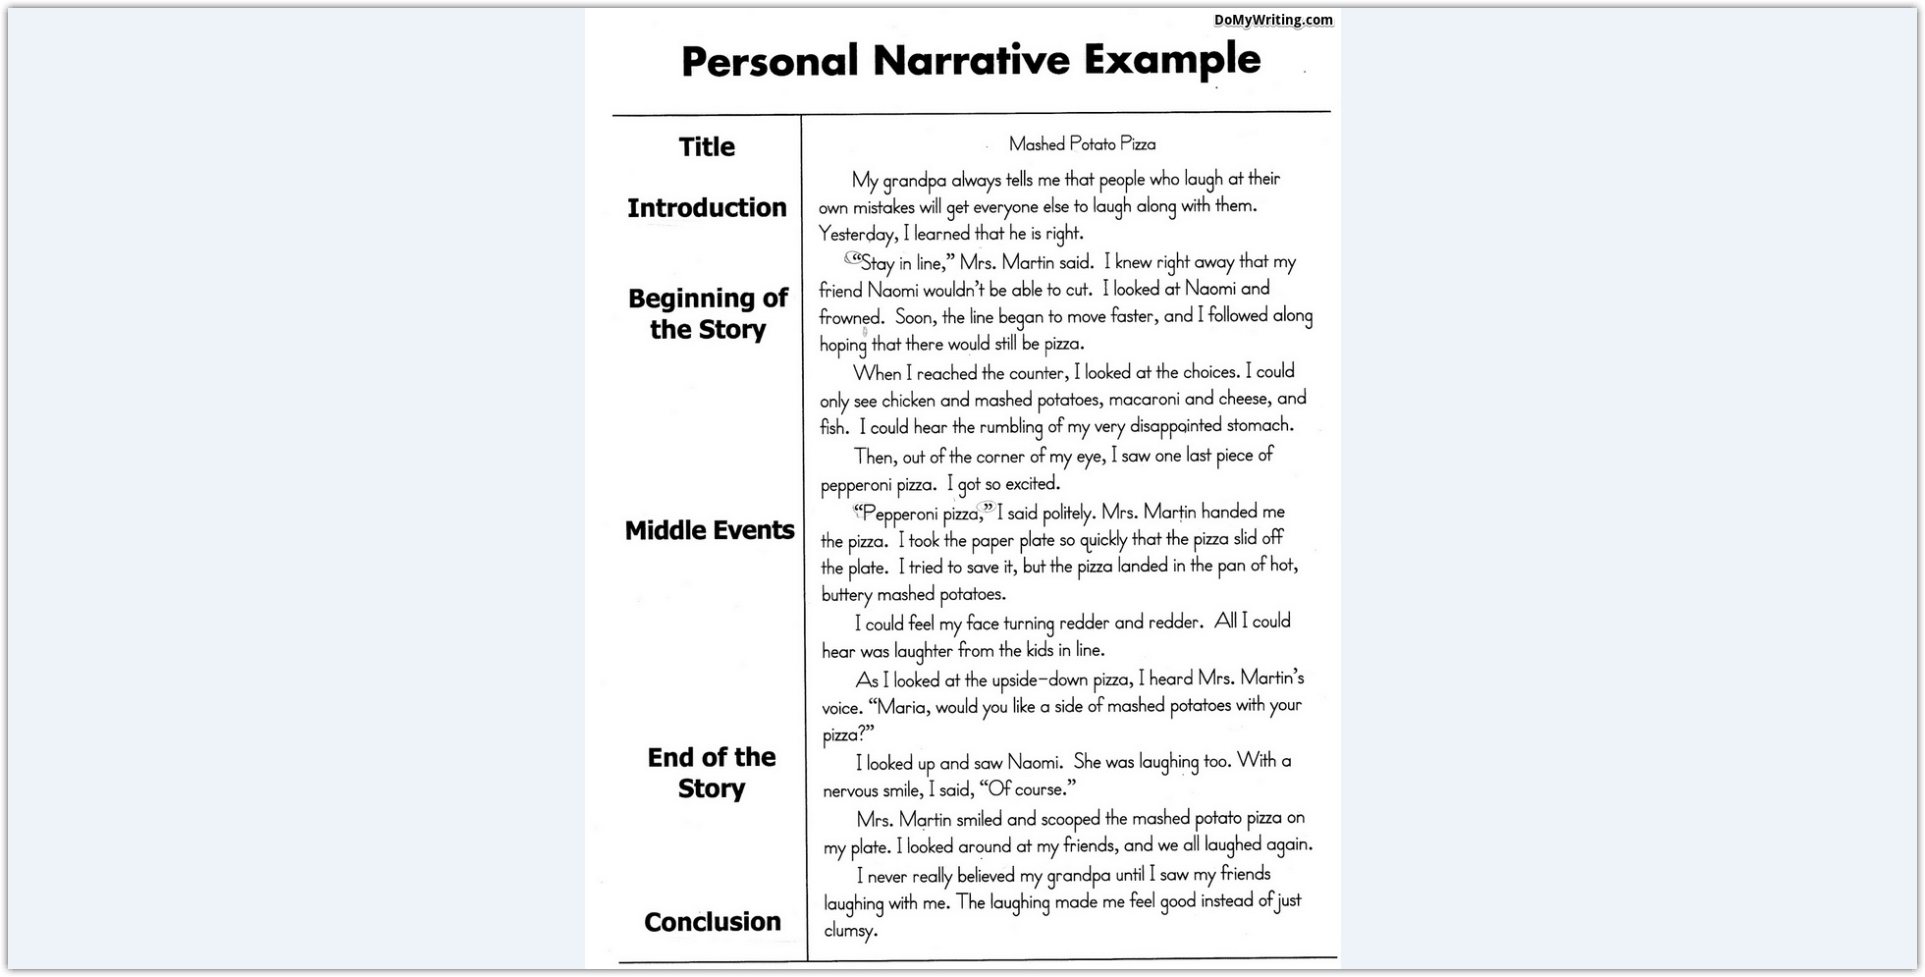 002 Narrative Essay Exceptional Examples 4th Grade Outline Format College Full